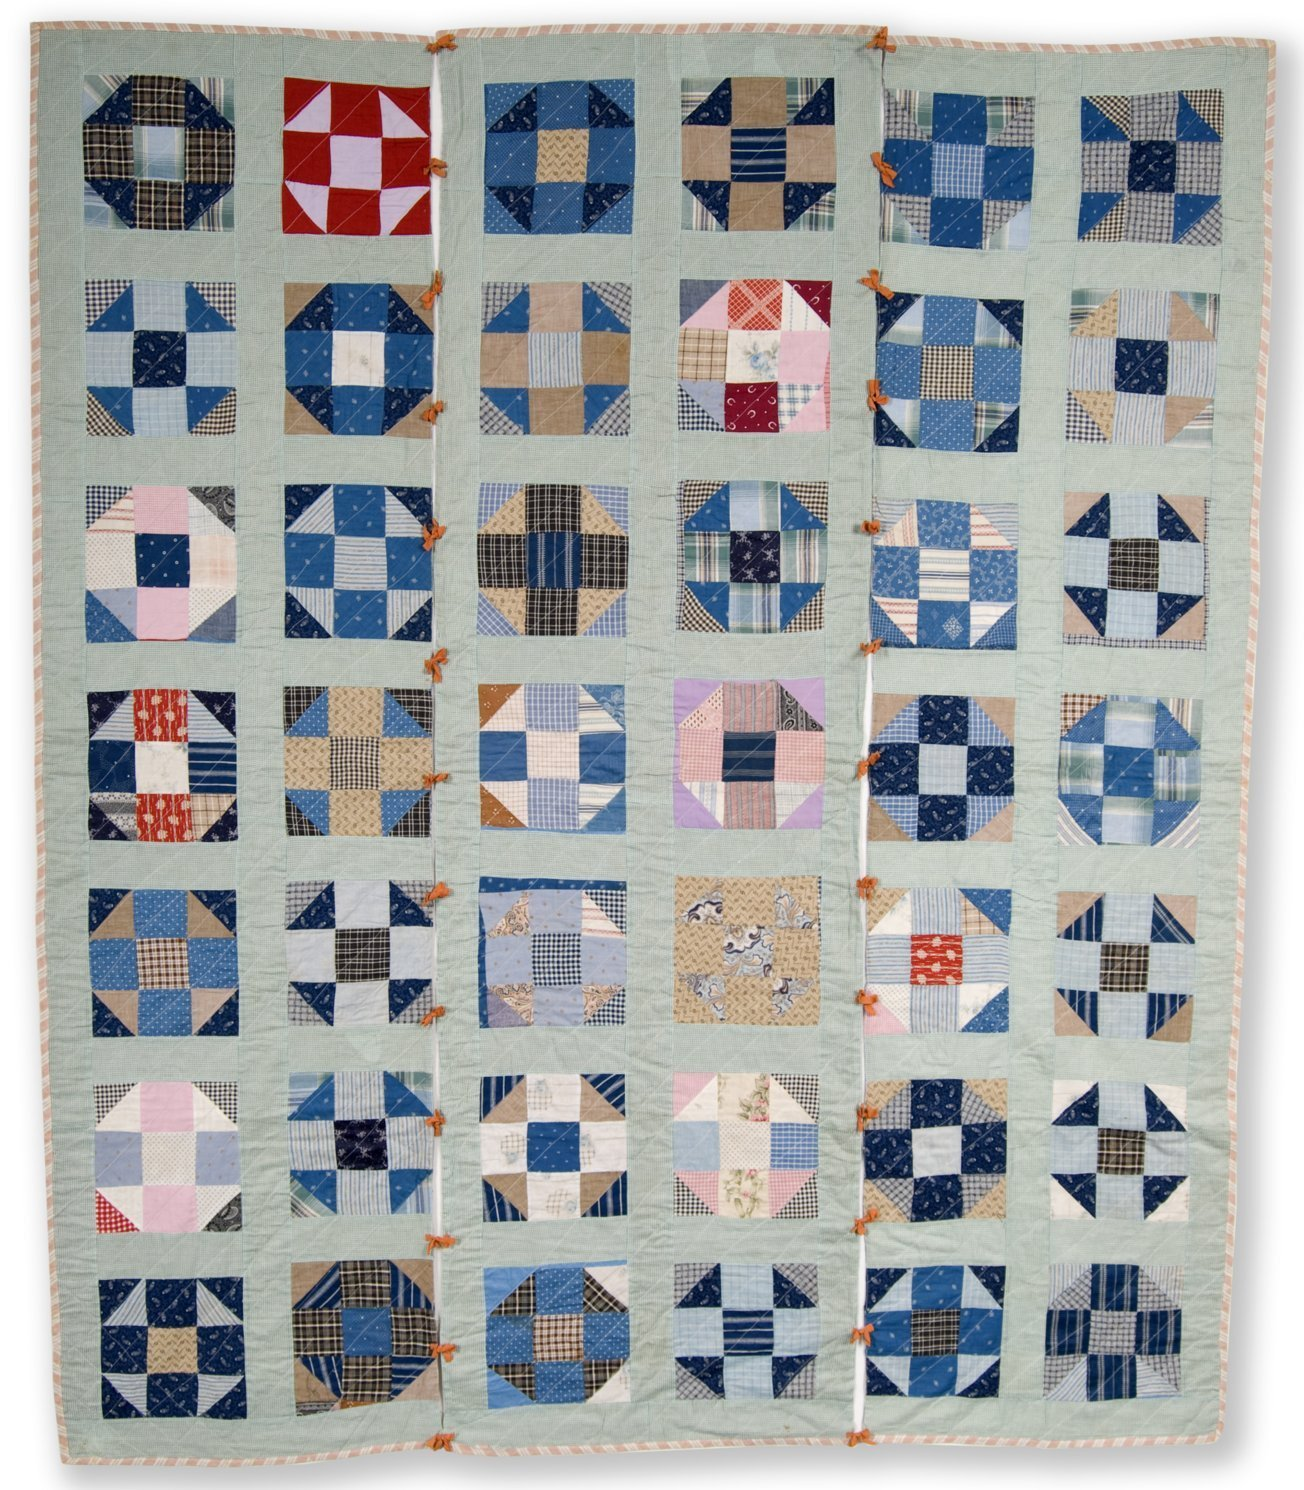 Shoo Fly or Double Monkey Wrench quilt - Kansas Memory - Kansas ... : monkey wrench quilt pattern history - Adamdwight.com